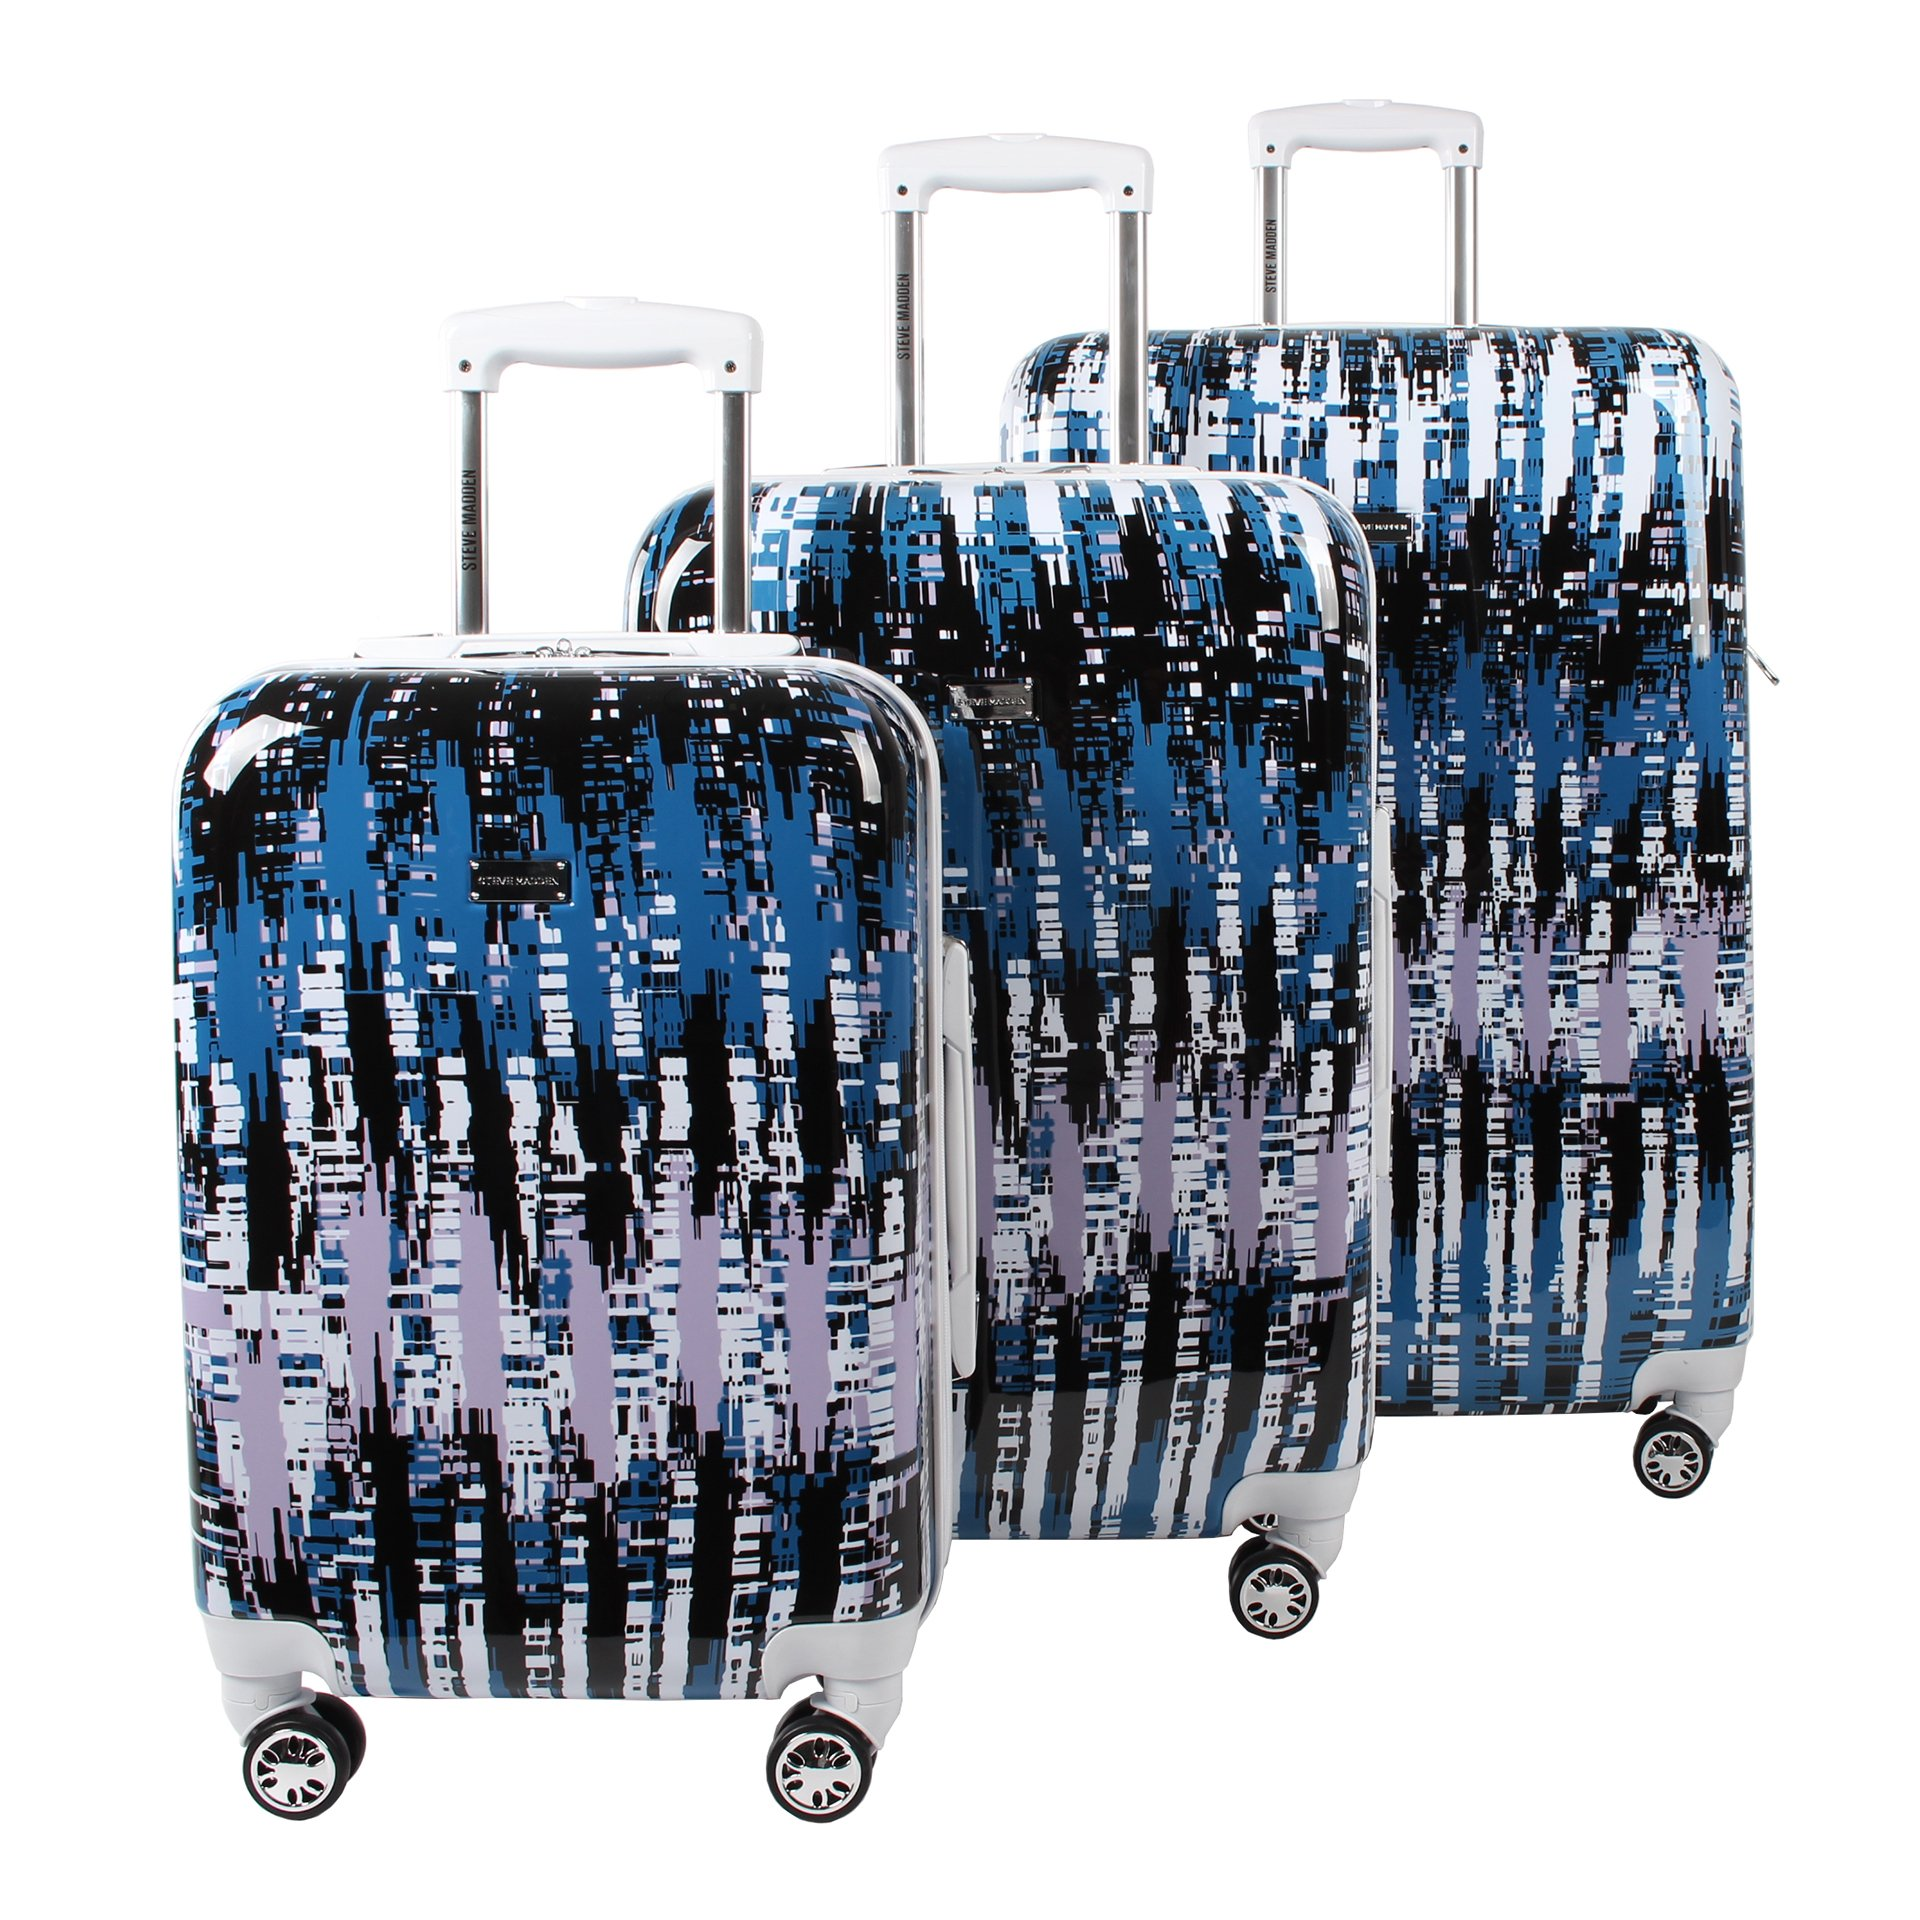 Steve Madden Luggage 3 Piece Hard Case Suitcase Set With Spinner Wheels (City Scape) by Steve Madden